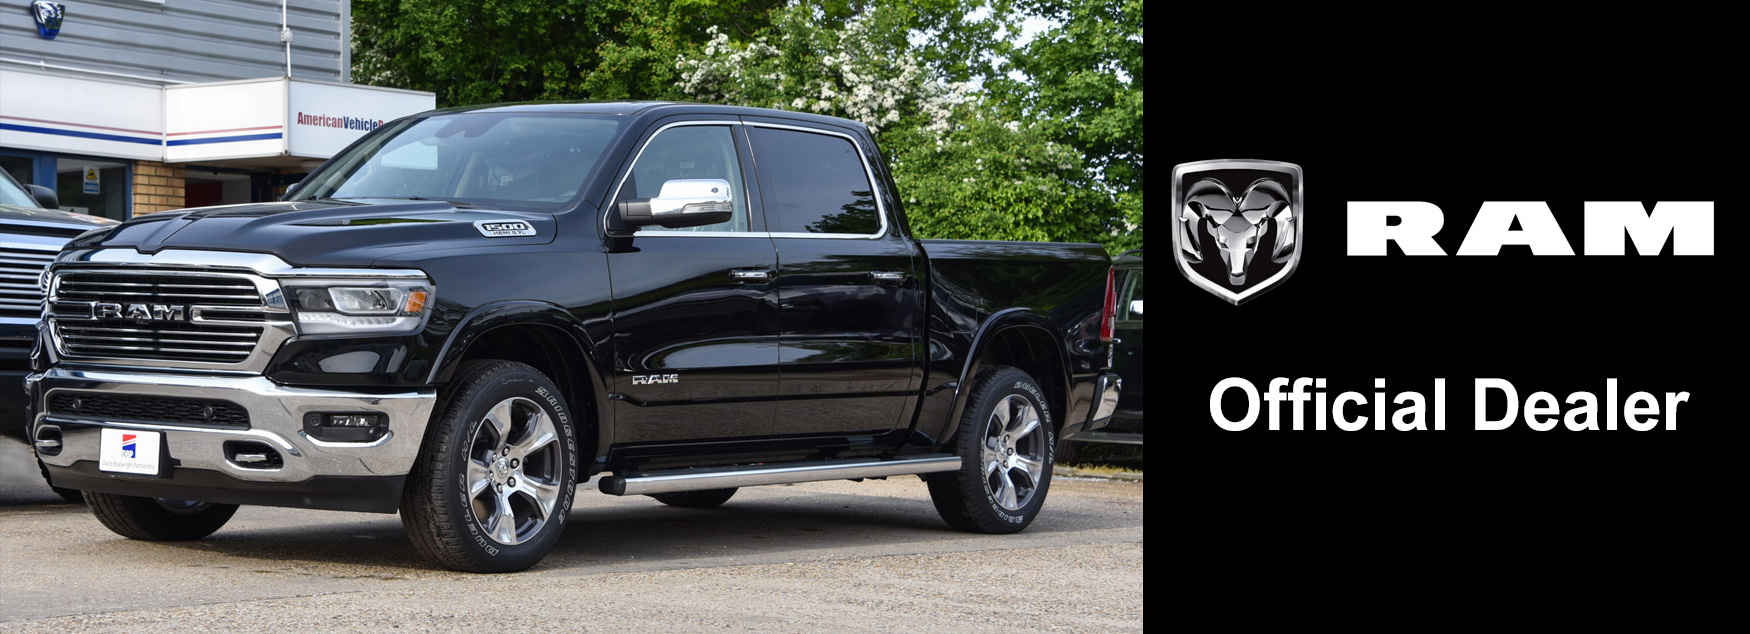 Dodge Ram Official UK Dealer